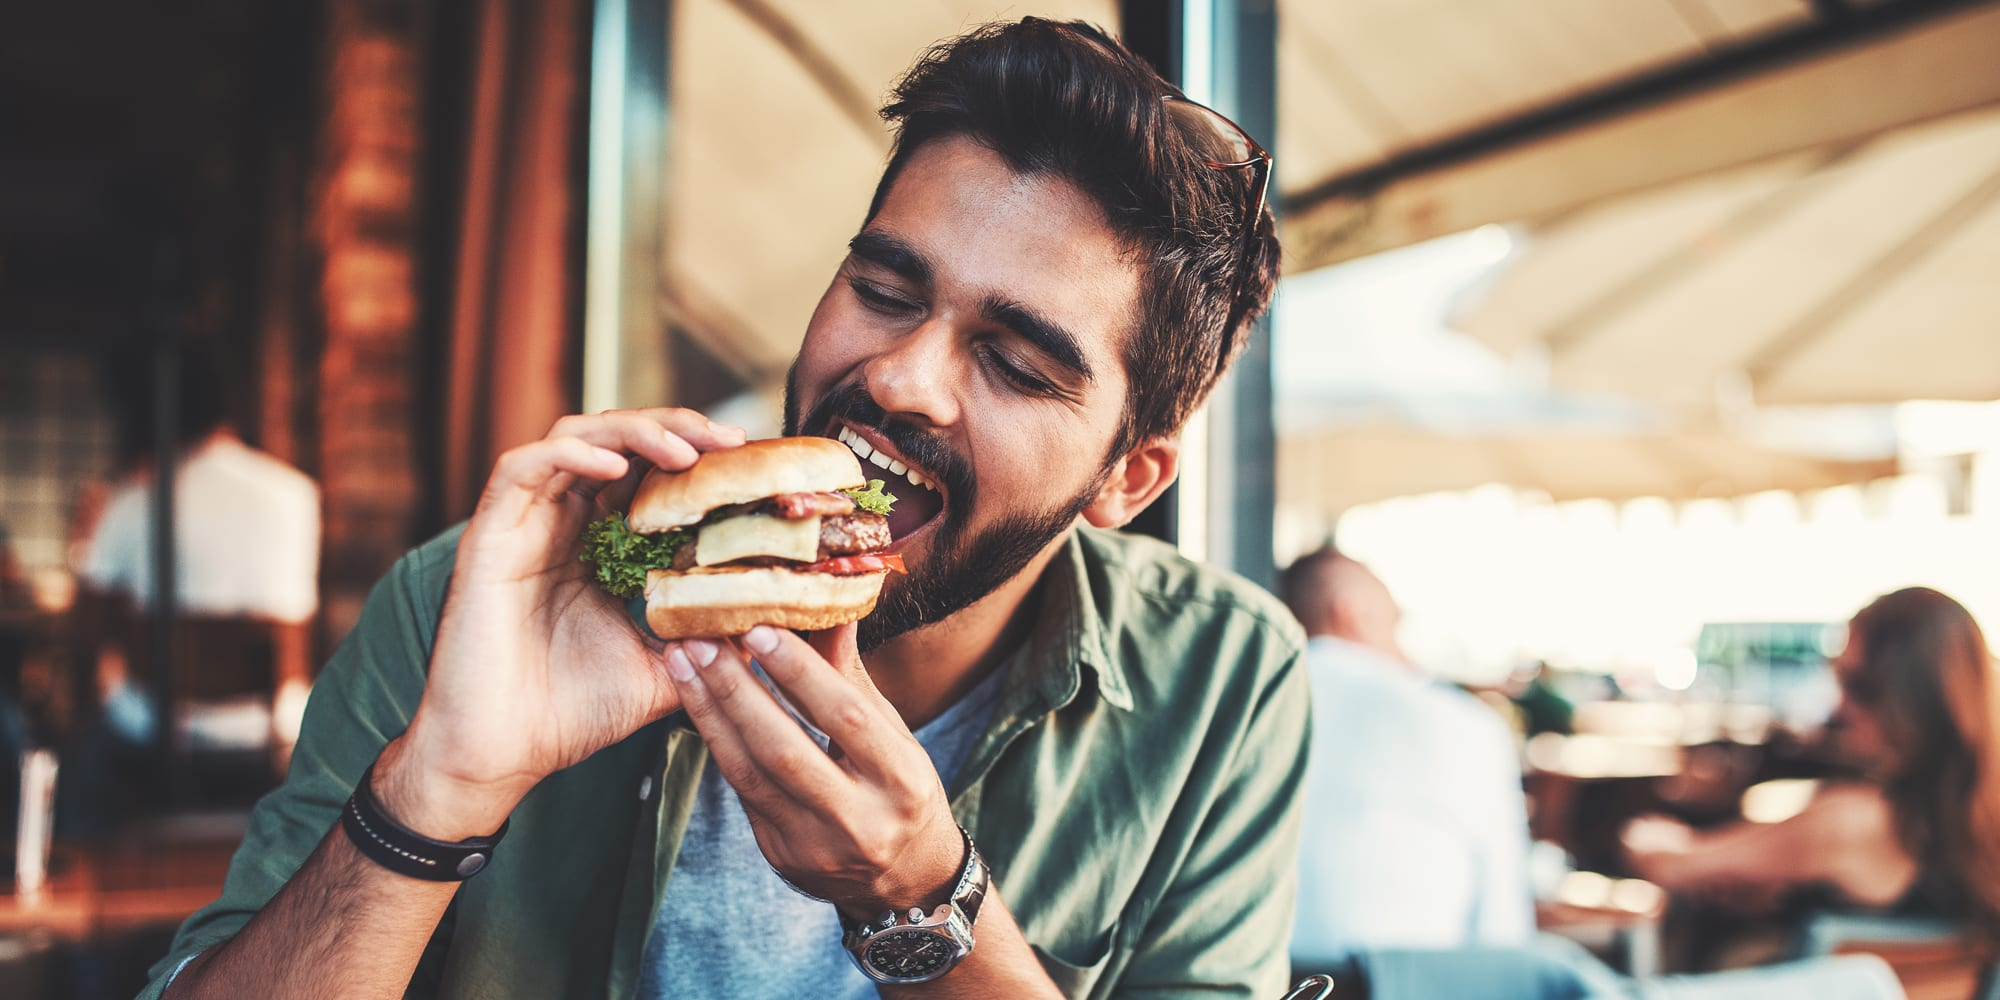 How a Cheat Meal Can Help With Weight Loss